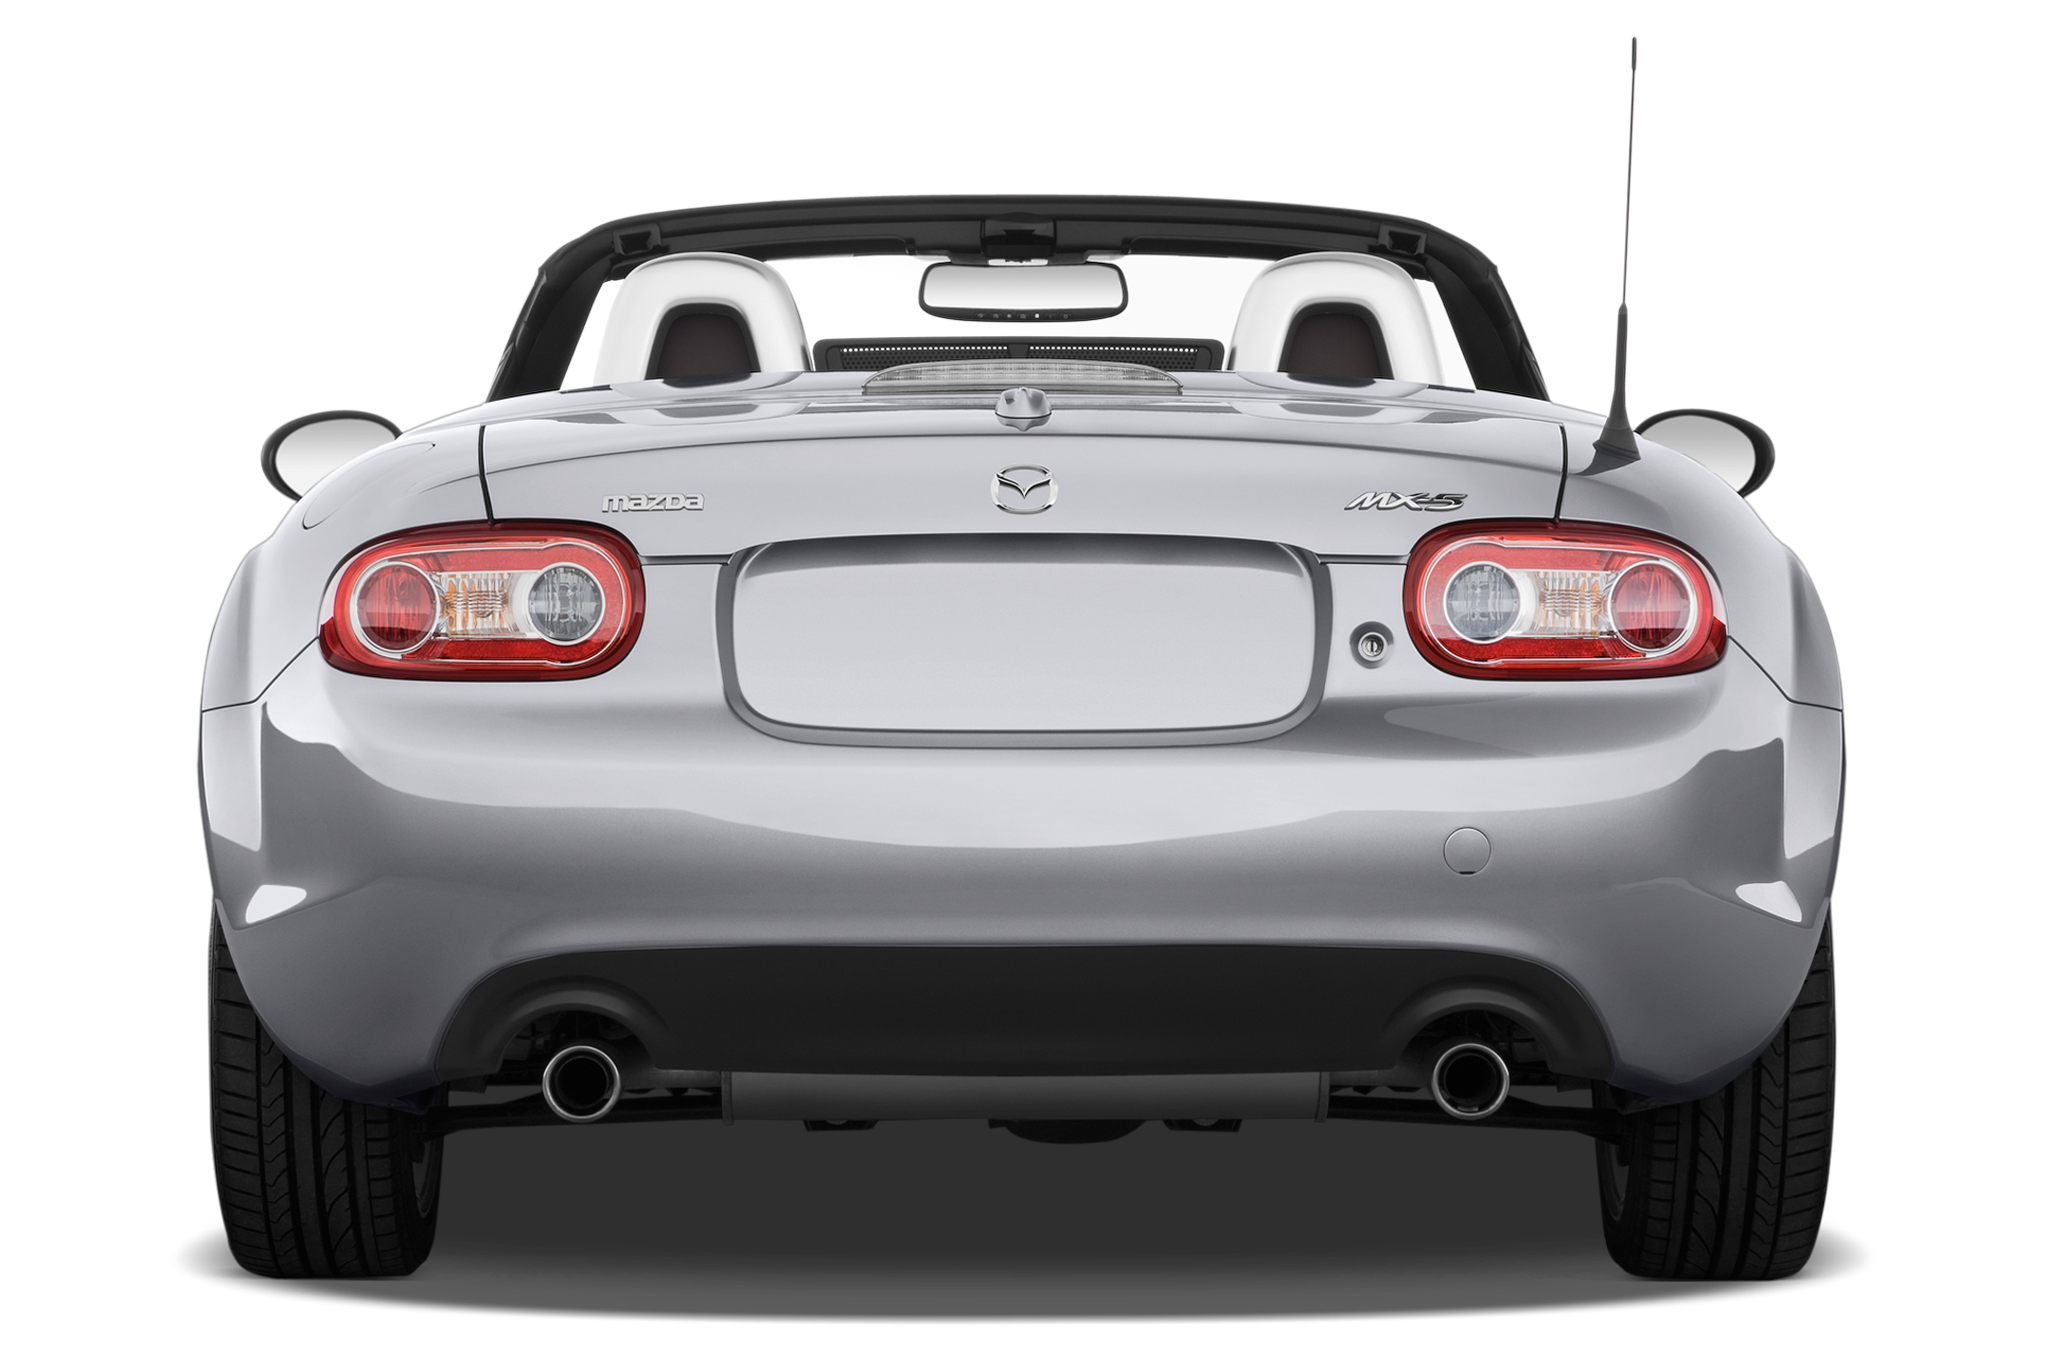 http://st.automobilemag.com/uploads/sites/10/2015/11/2012-mazda-mx5-miata-grand-touring-hard-top-auto-convertible-rear-view.png